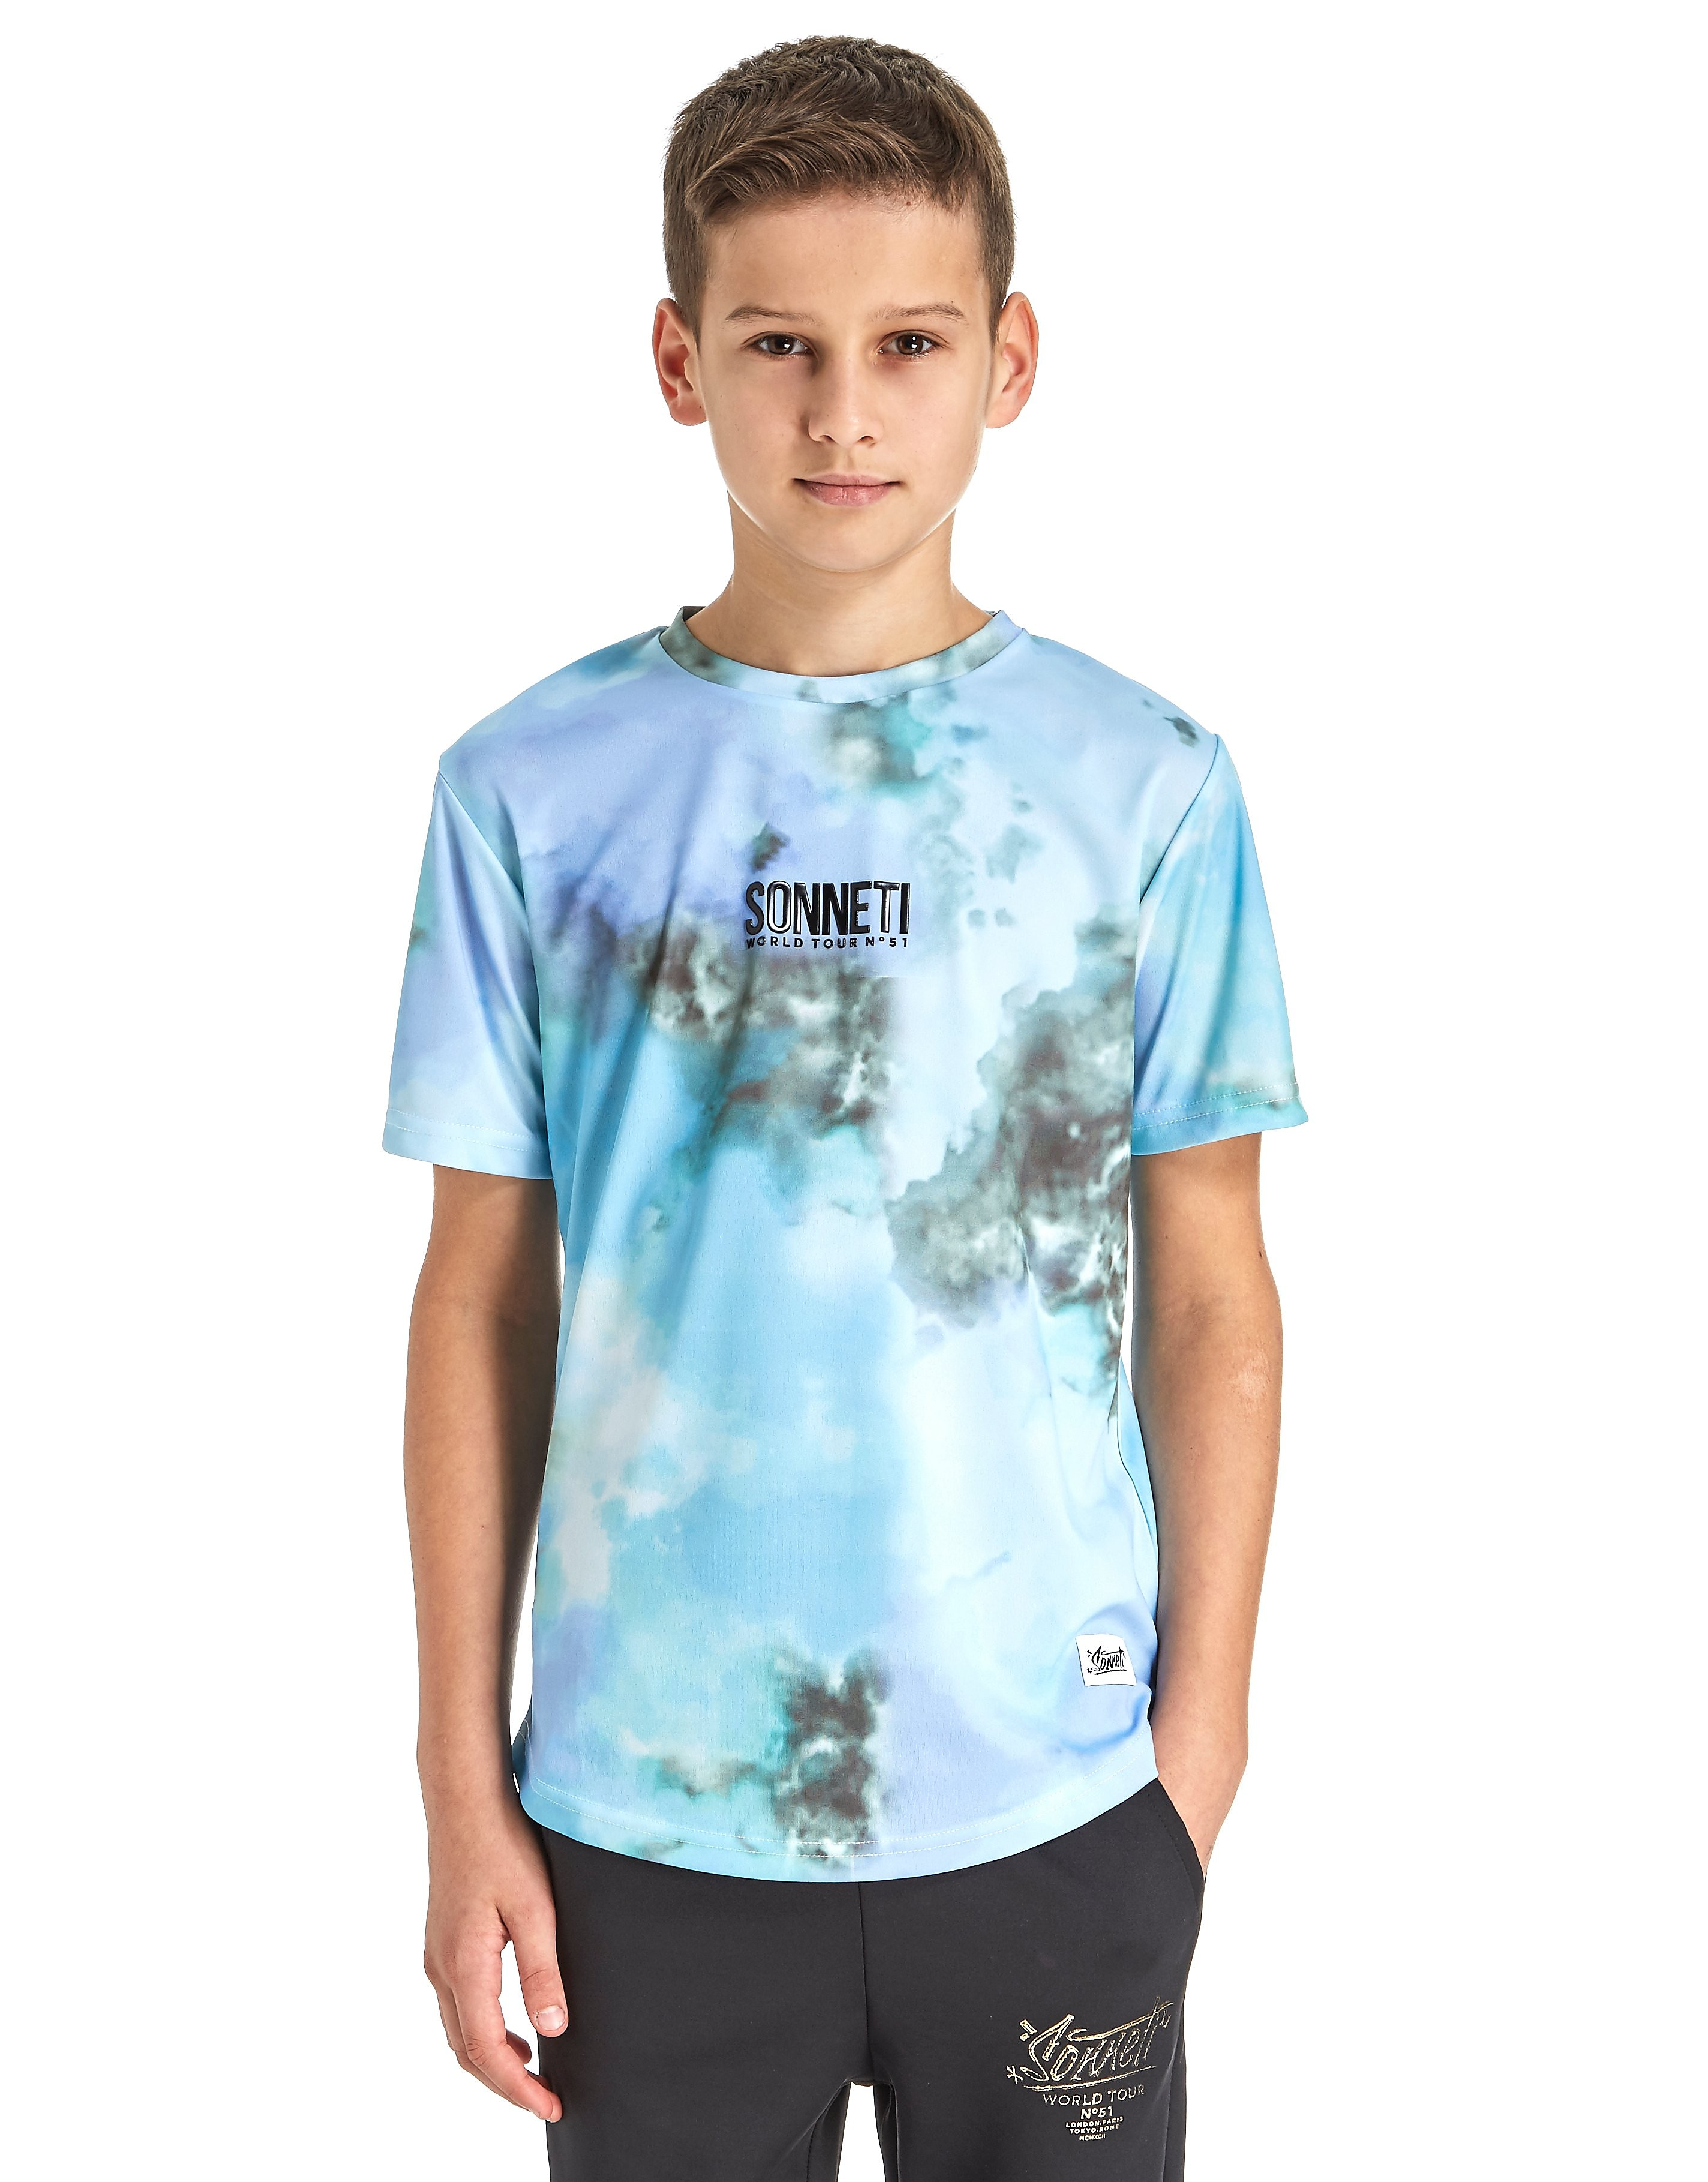 Sonneti Ward T-Shirt Kinder